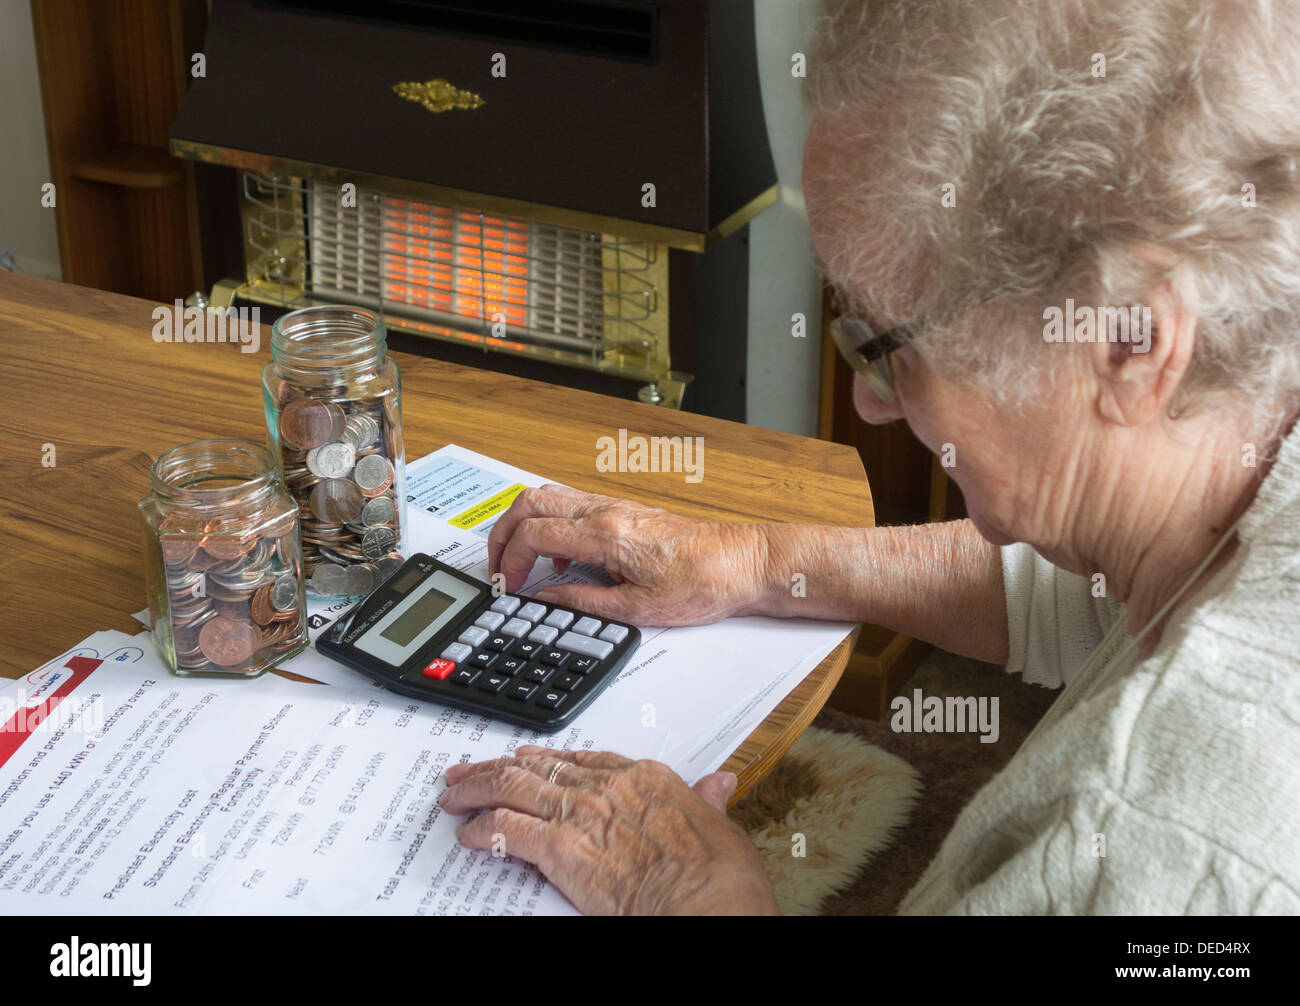 Elderly lady in her nineties looking at gas and electric bills with calculator and jars of coins on table. Gas fire Stock Photo